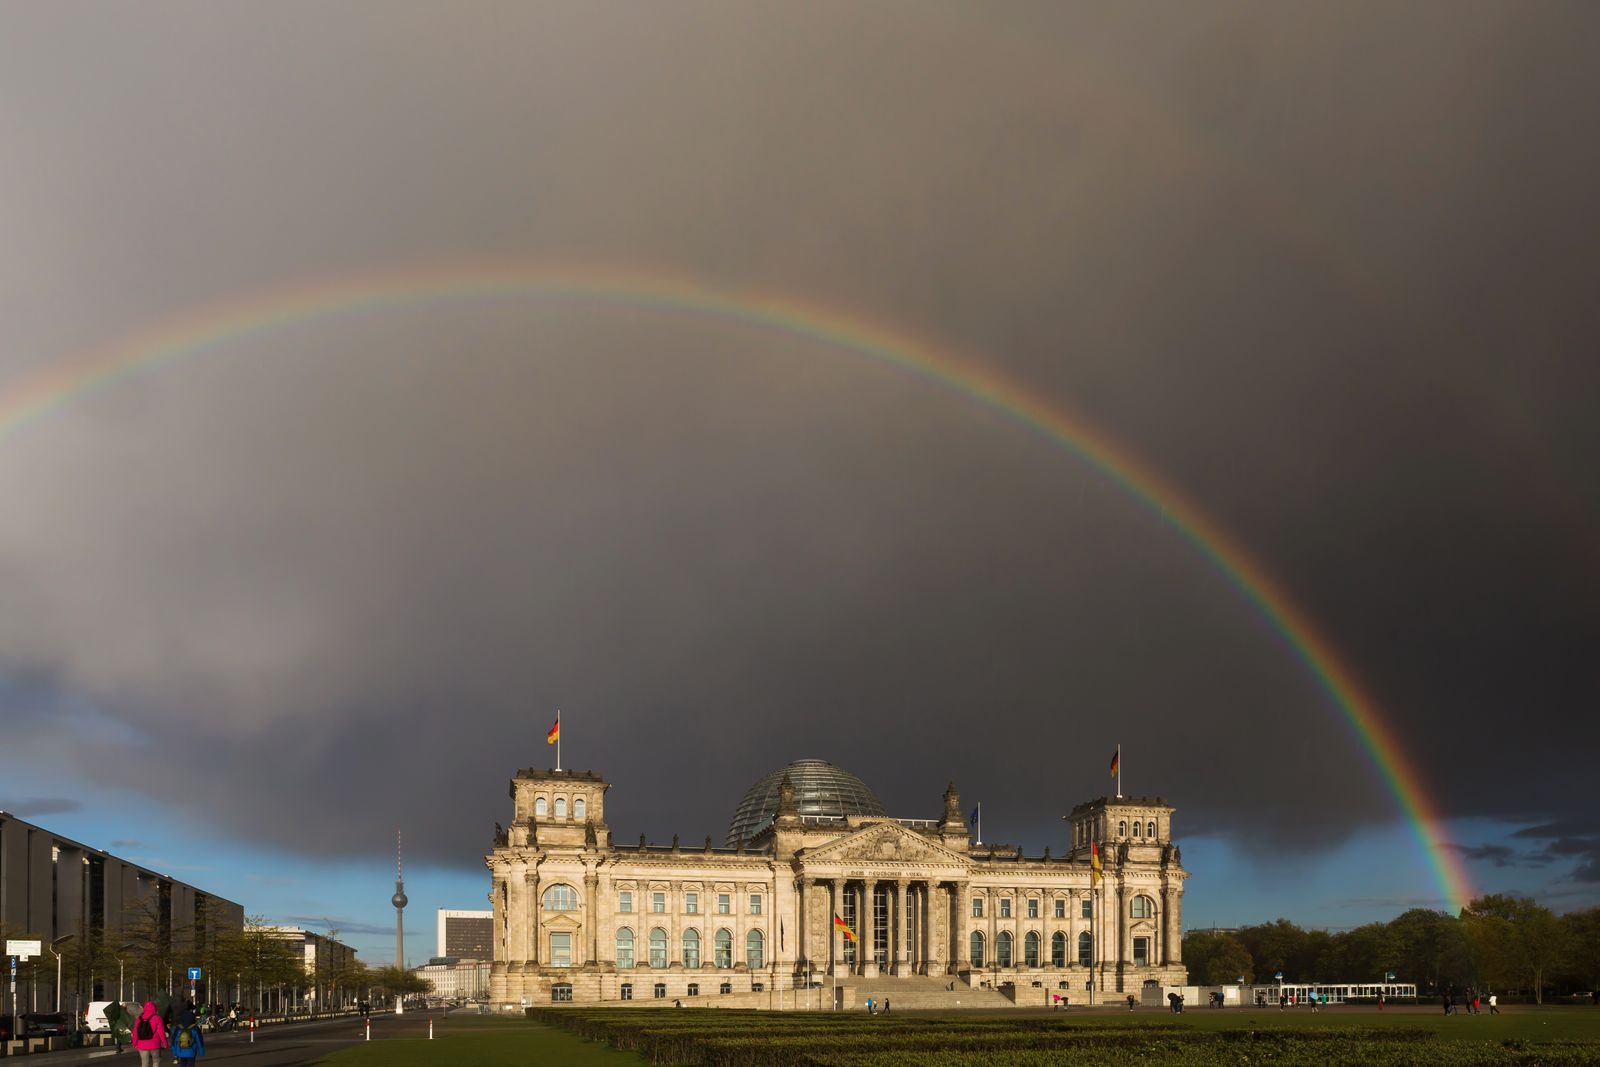 Full rainbow over the Reichstag (parliament building) in the german capital Berlin - very rare scene